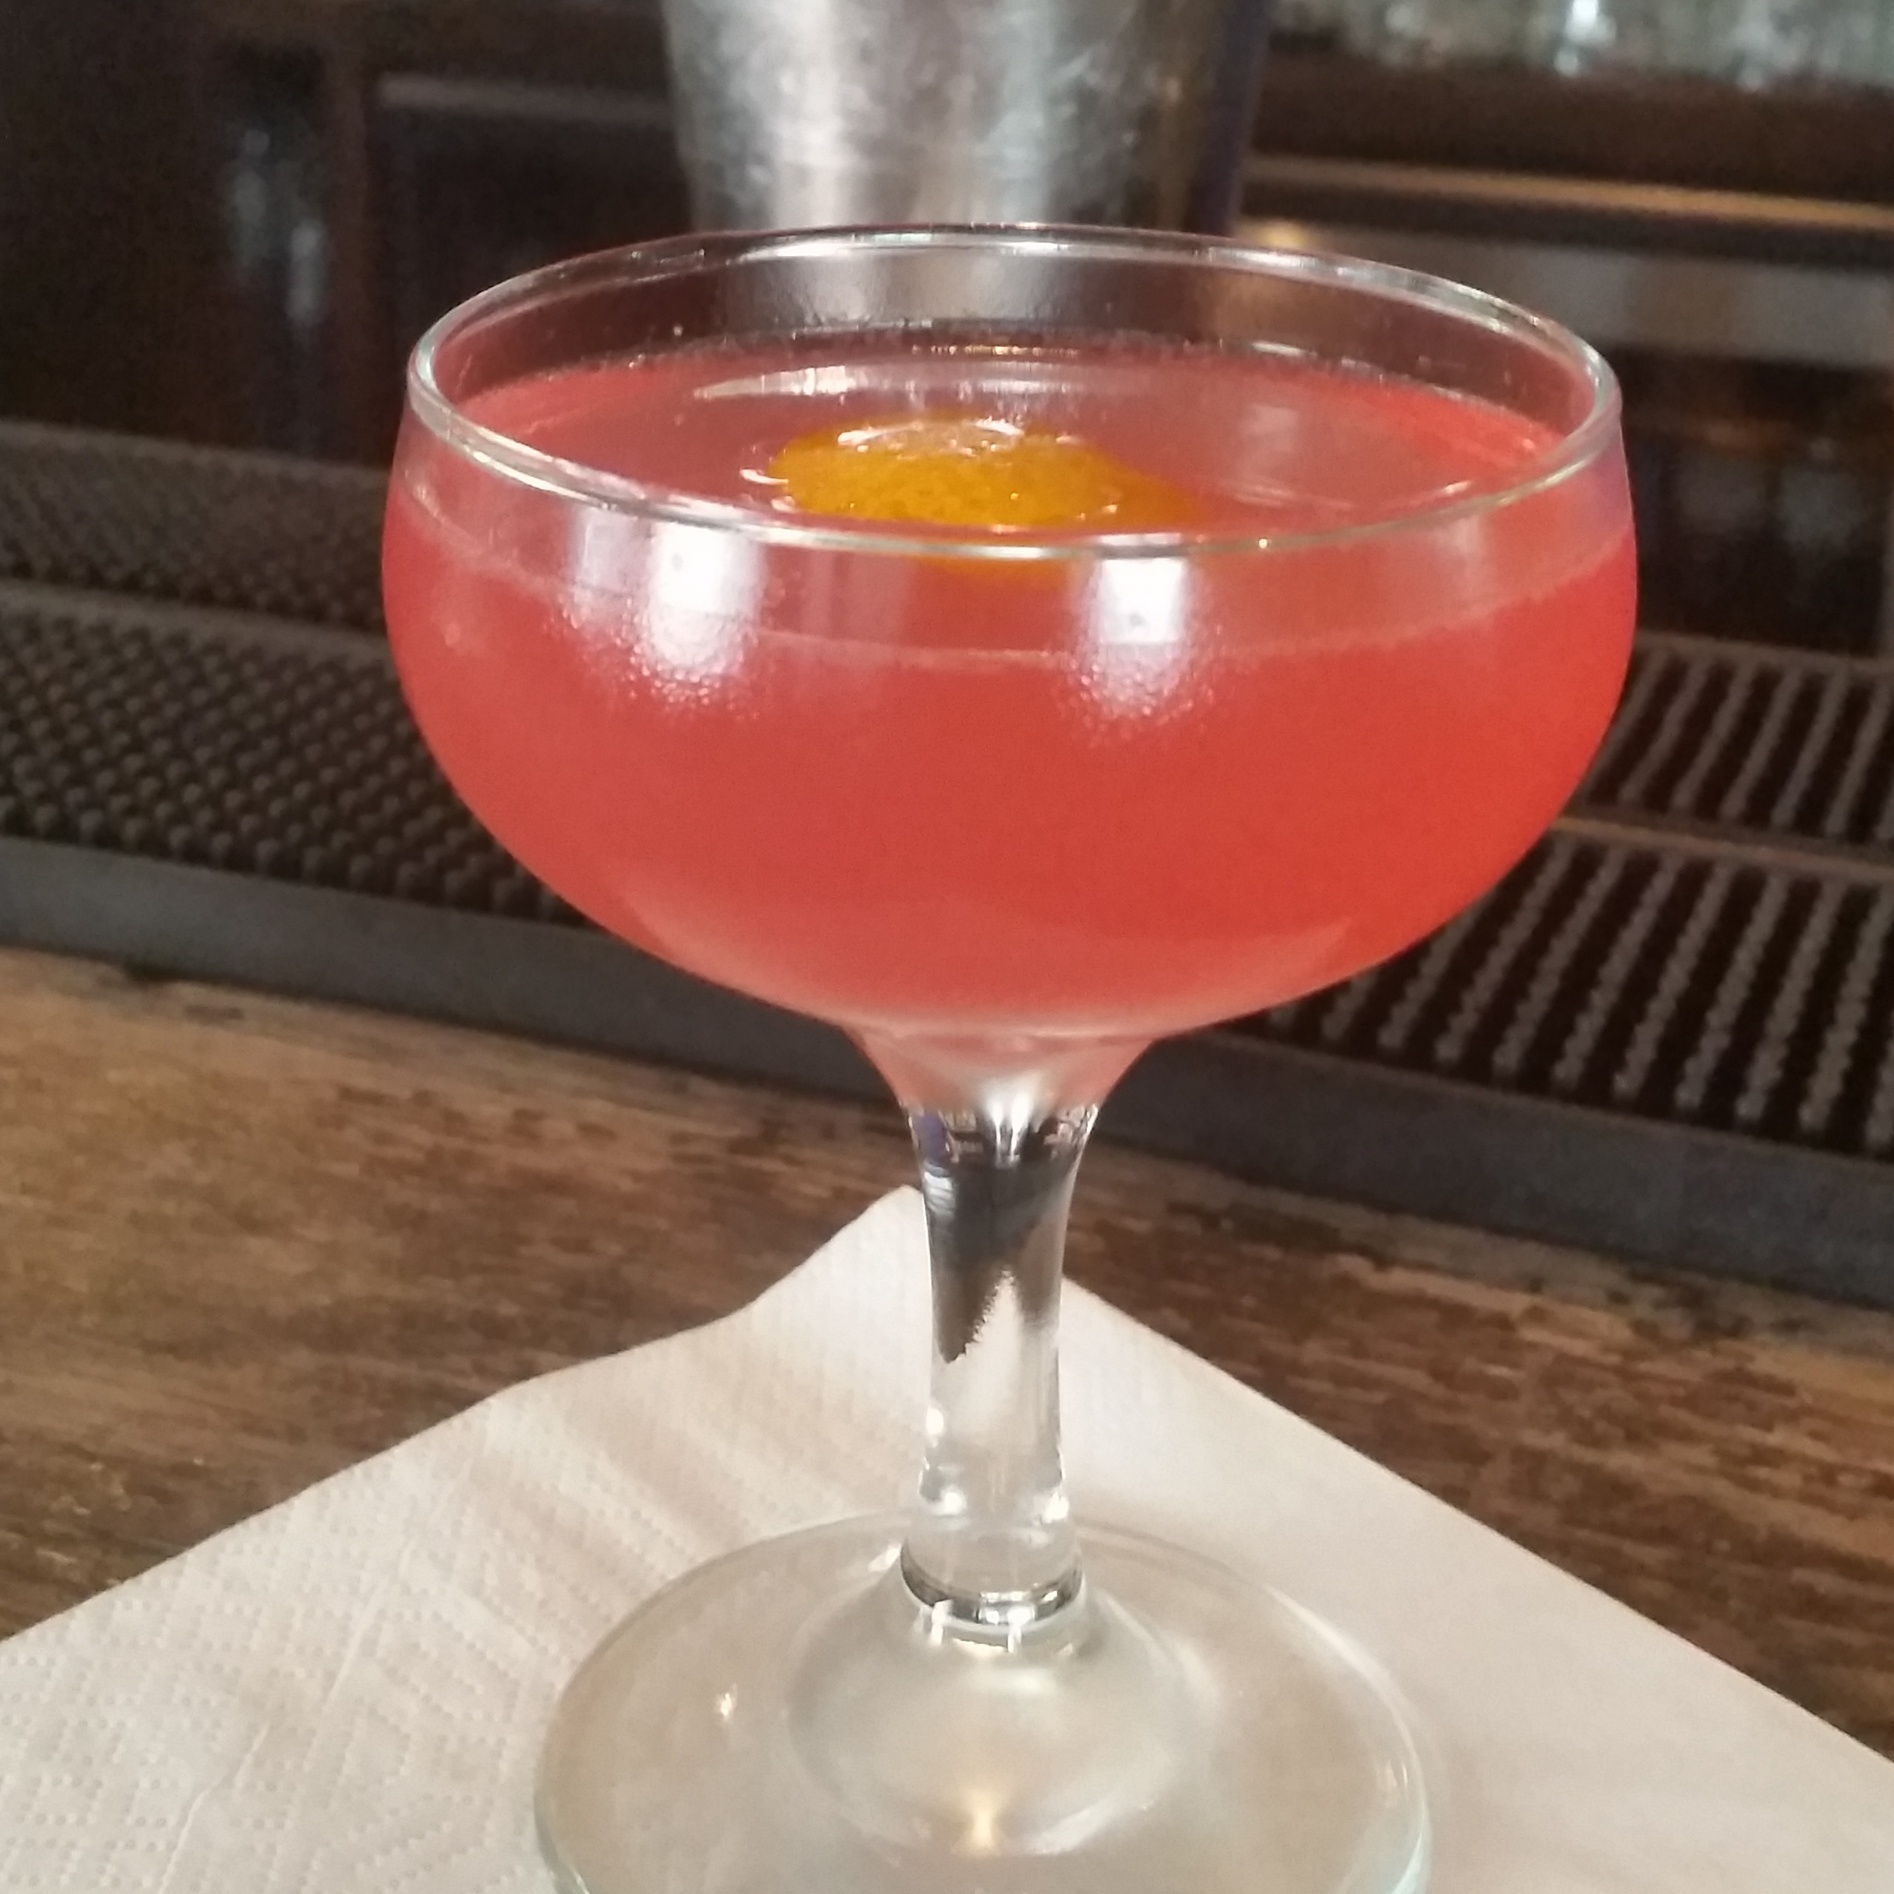 Cosmopolitan at Shaker Bar School